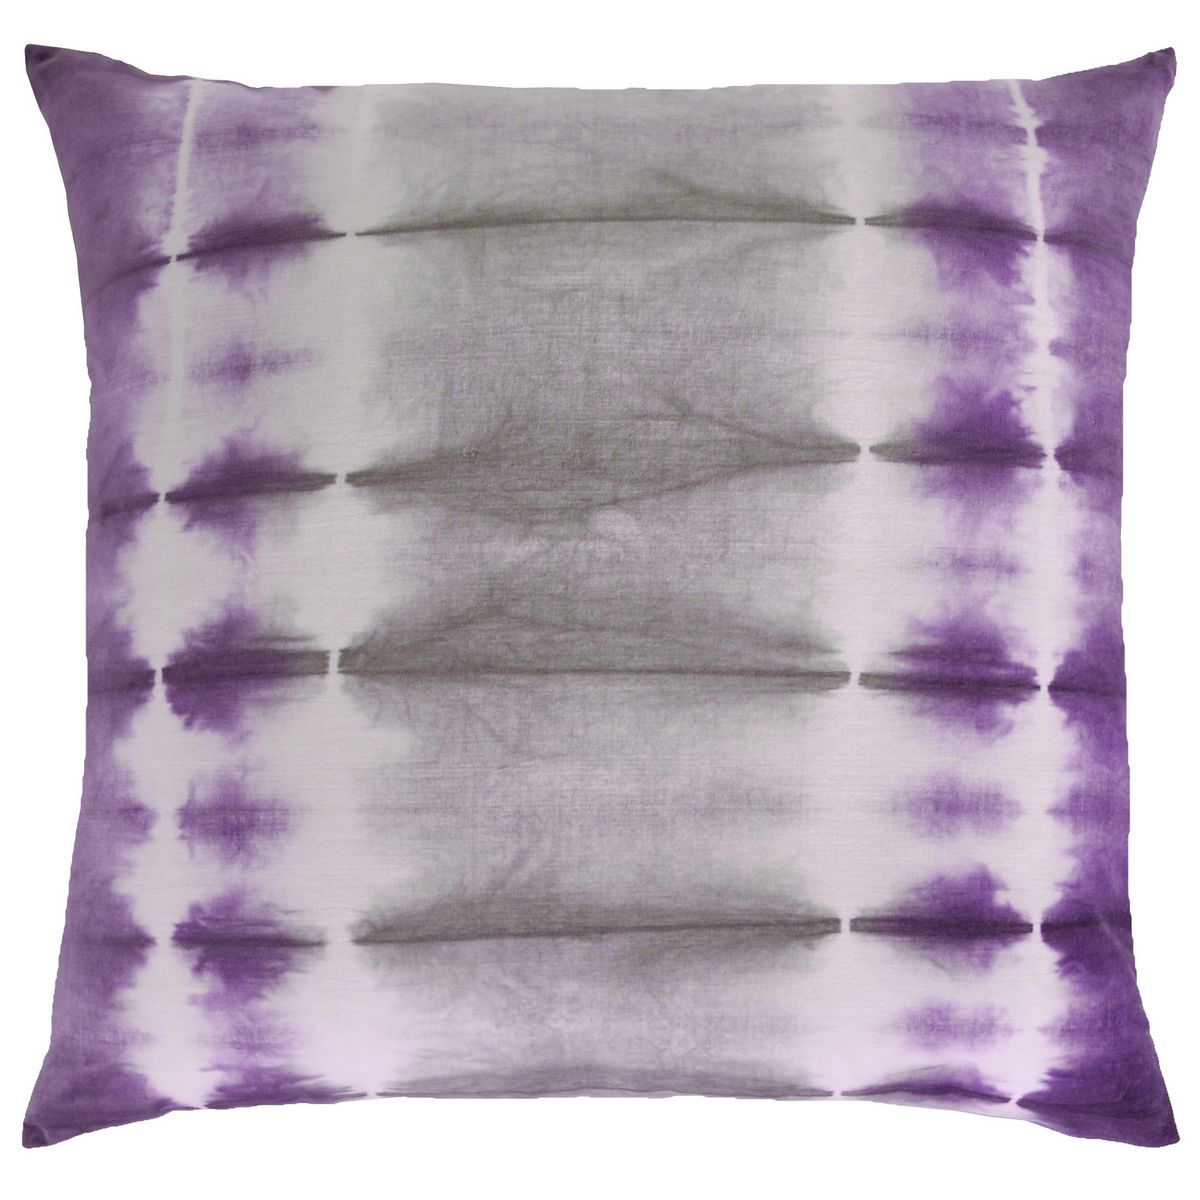 Kevin Obrien Studio Shibori Cotton Velvet Floor Pillows